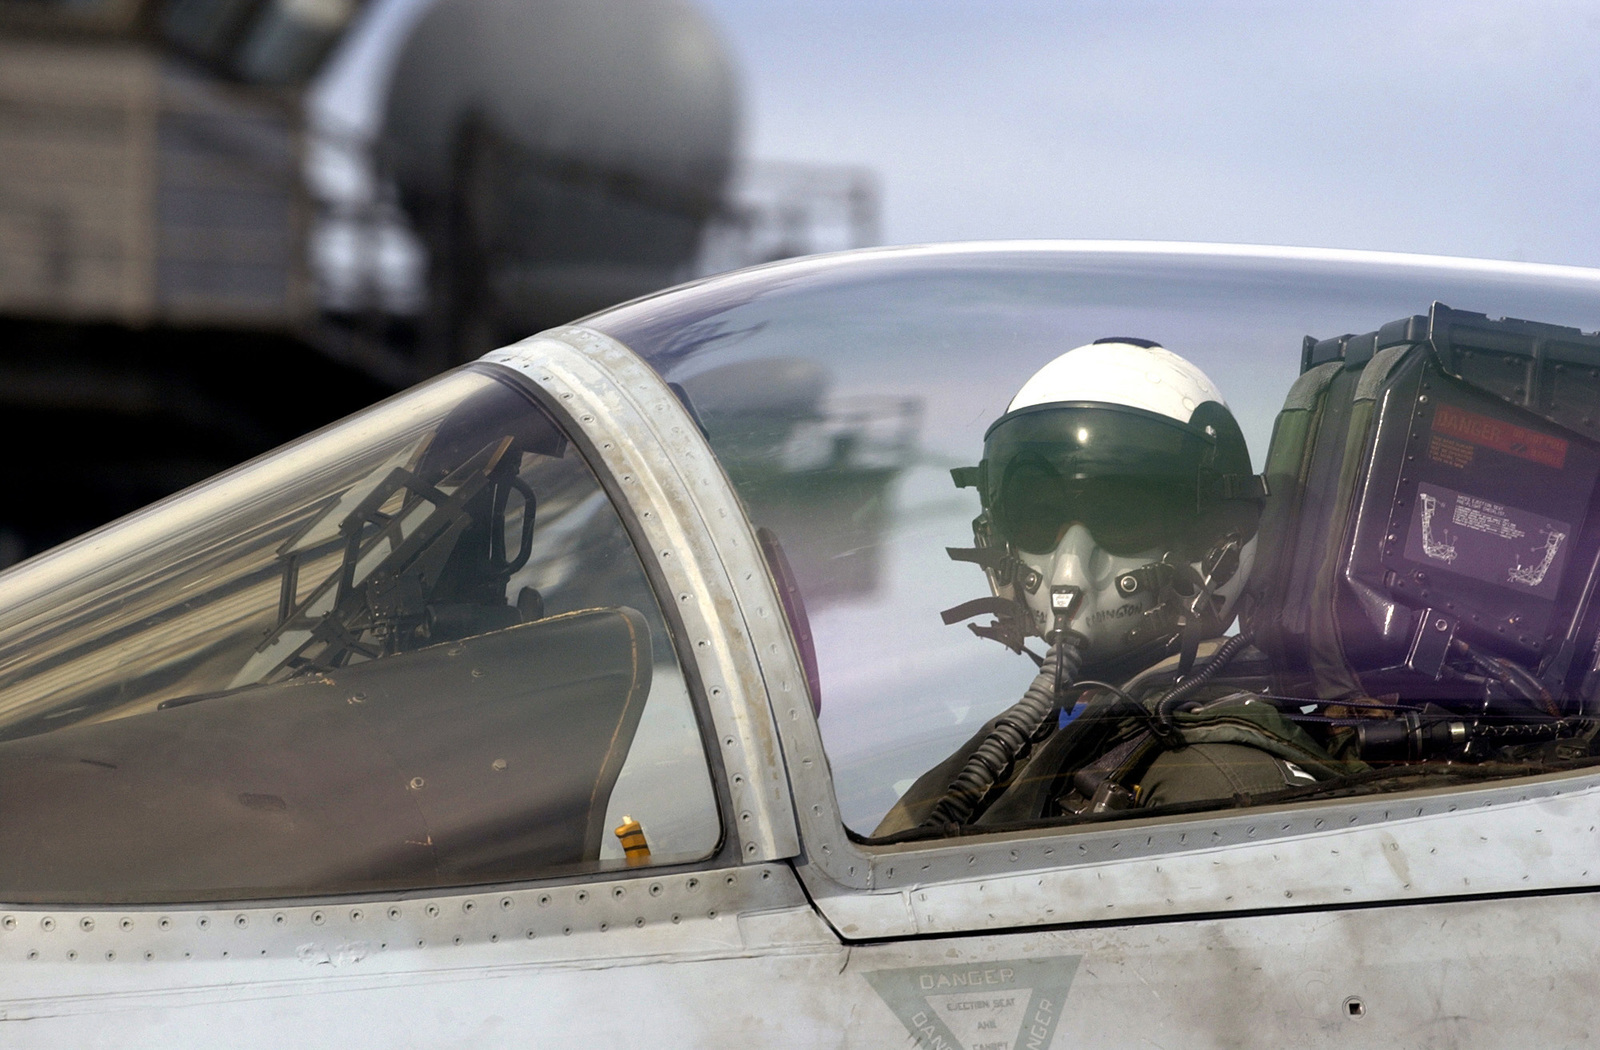 """A U.S. Navy Strike Fighter Squadron 113 (VFA-113,""""Stingers"""") pilot watches the hand signals of an aircraft handler as he is directed to taxi his F/A-18E Super Hornet multi-mission fighter/attack aircraft into launch position before taking off from the flight deck of the Nimitz Class Aircraft Carrier USS RONALD REAGAN (CVN 76) on Jan. 28, 2007, while the REAGAN and its strike group are currently underway on a surge deployment in support of U.S. military operations in the western Pacific Ocean. (U.S. Navy photo by Mass Communication SPECIALIST 2nd Class Aaron Burden) (Released)"""